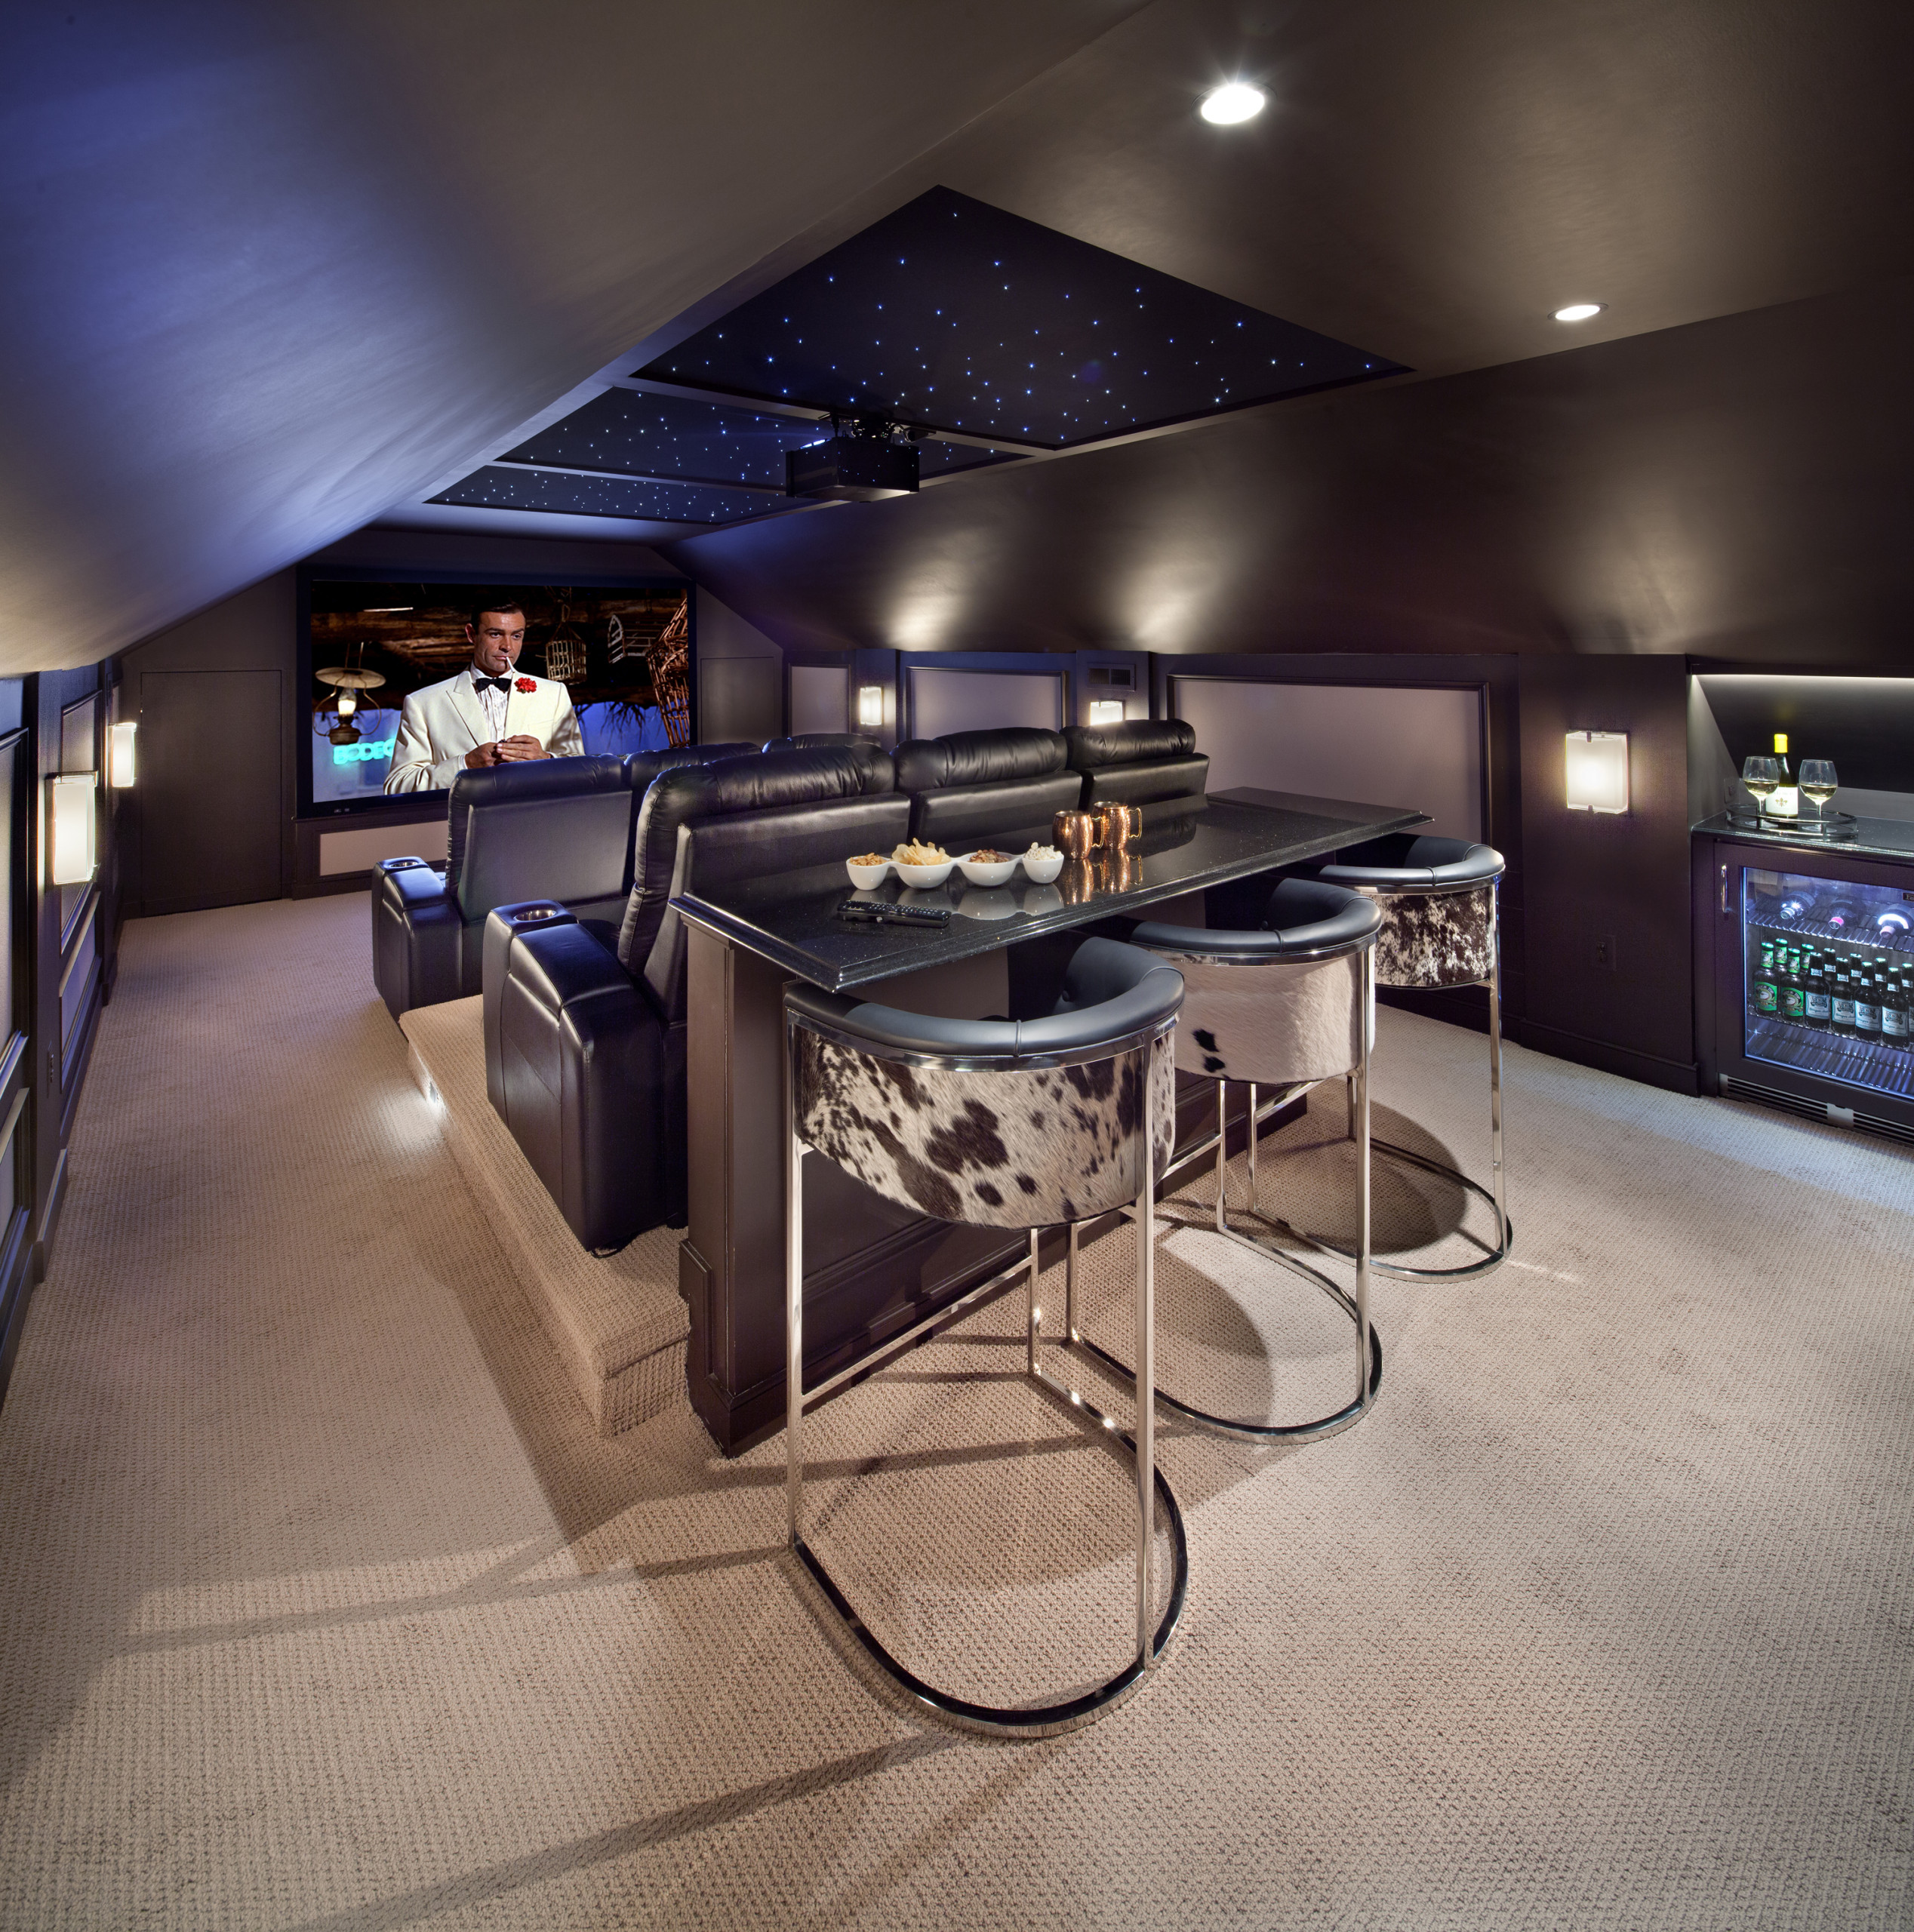 75 Beautiful Home Theater Pictures Ideas November 2020 Houzz